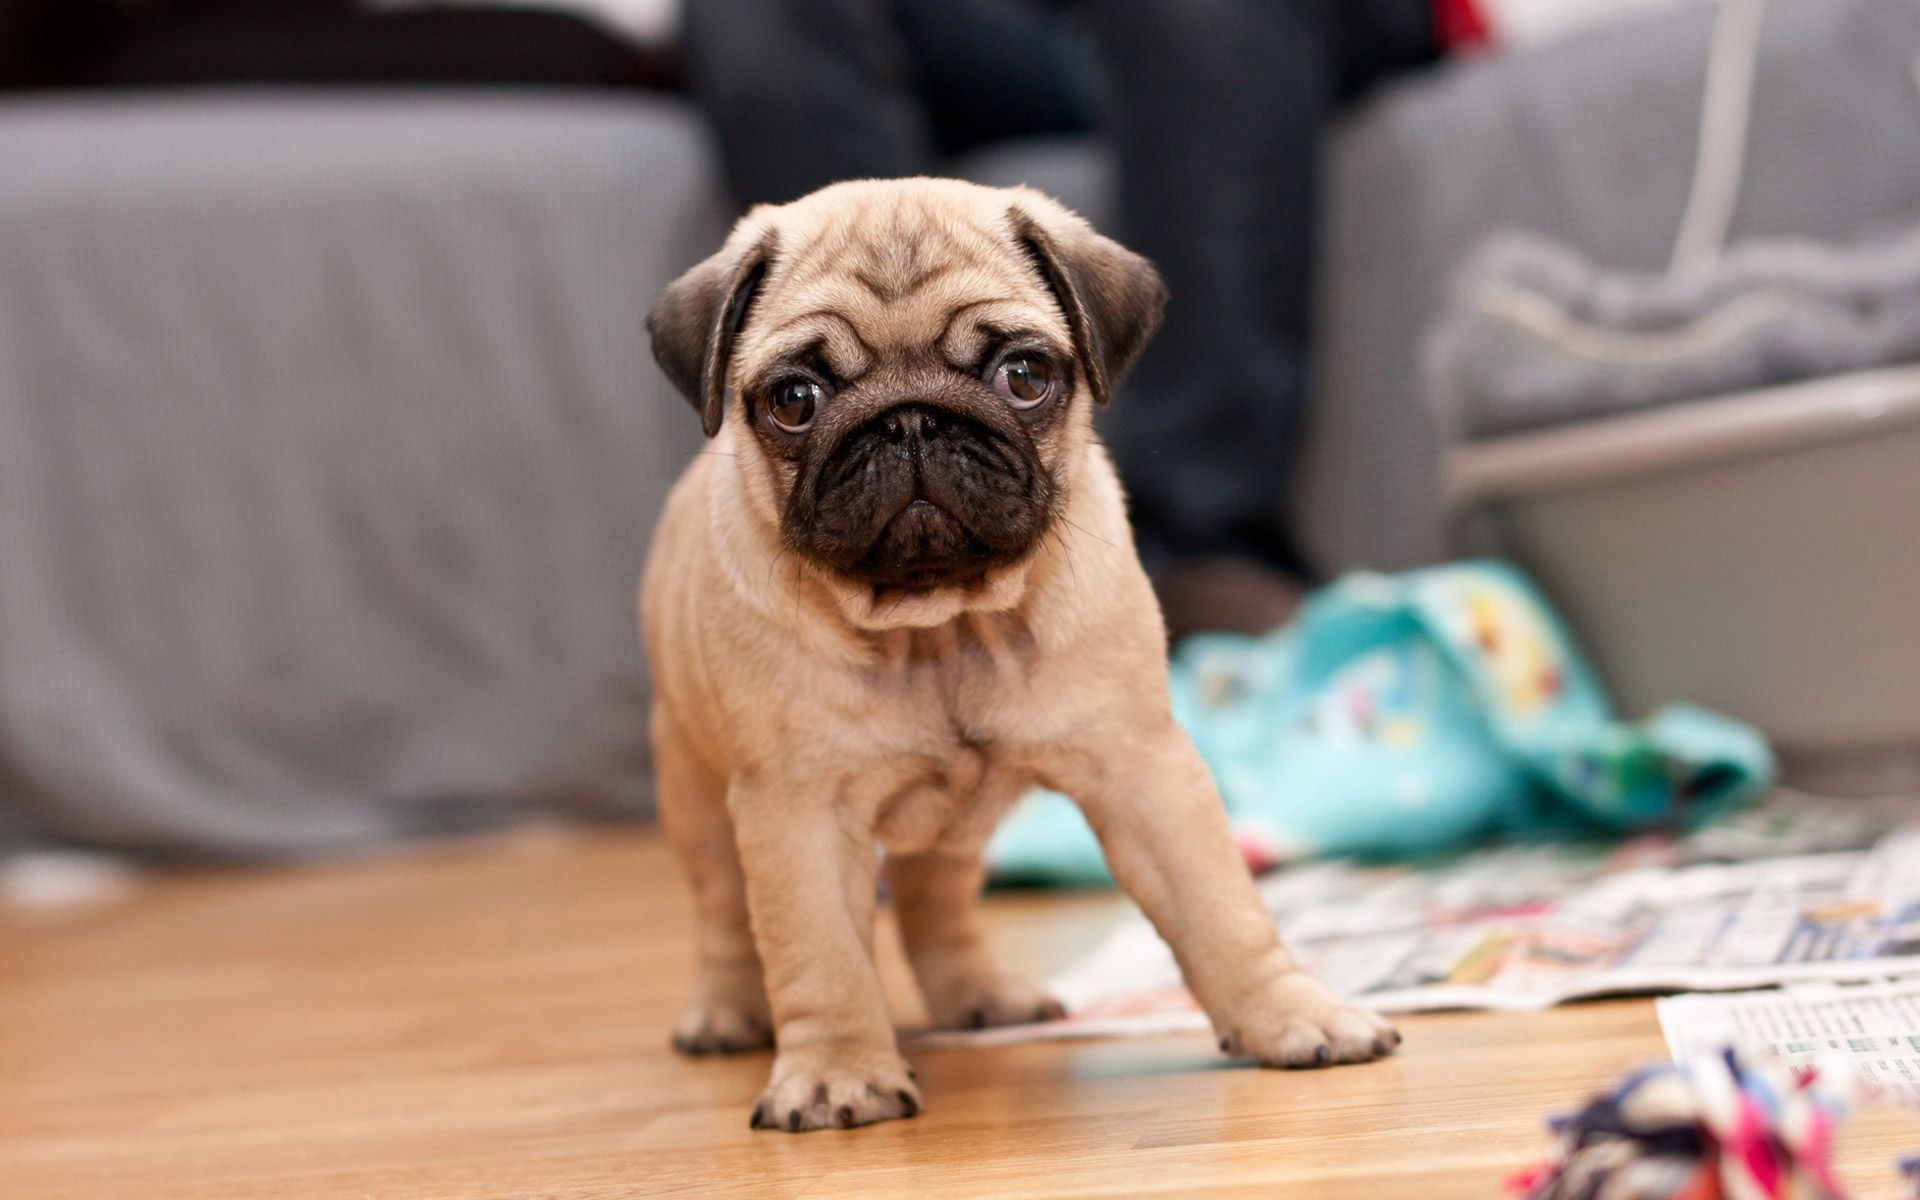 pug puppy hd wallpaper gratis, Descargar, HD Wallpapers, Dogs, Puppy, Cute